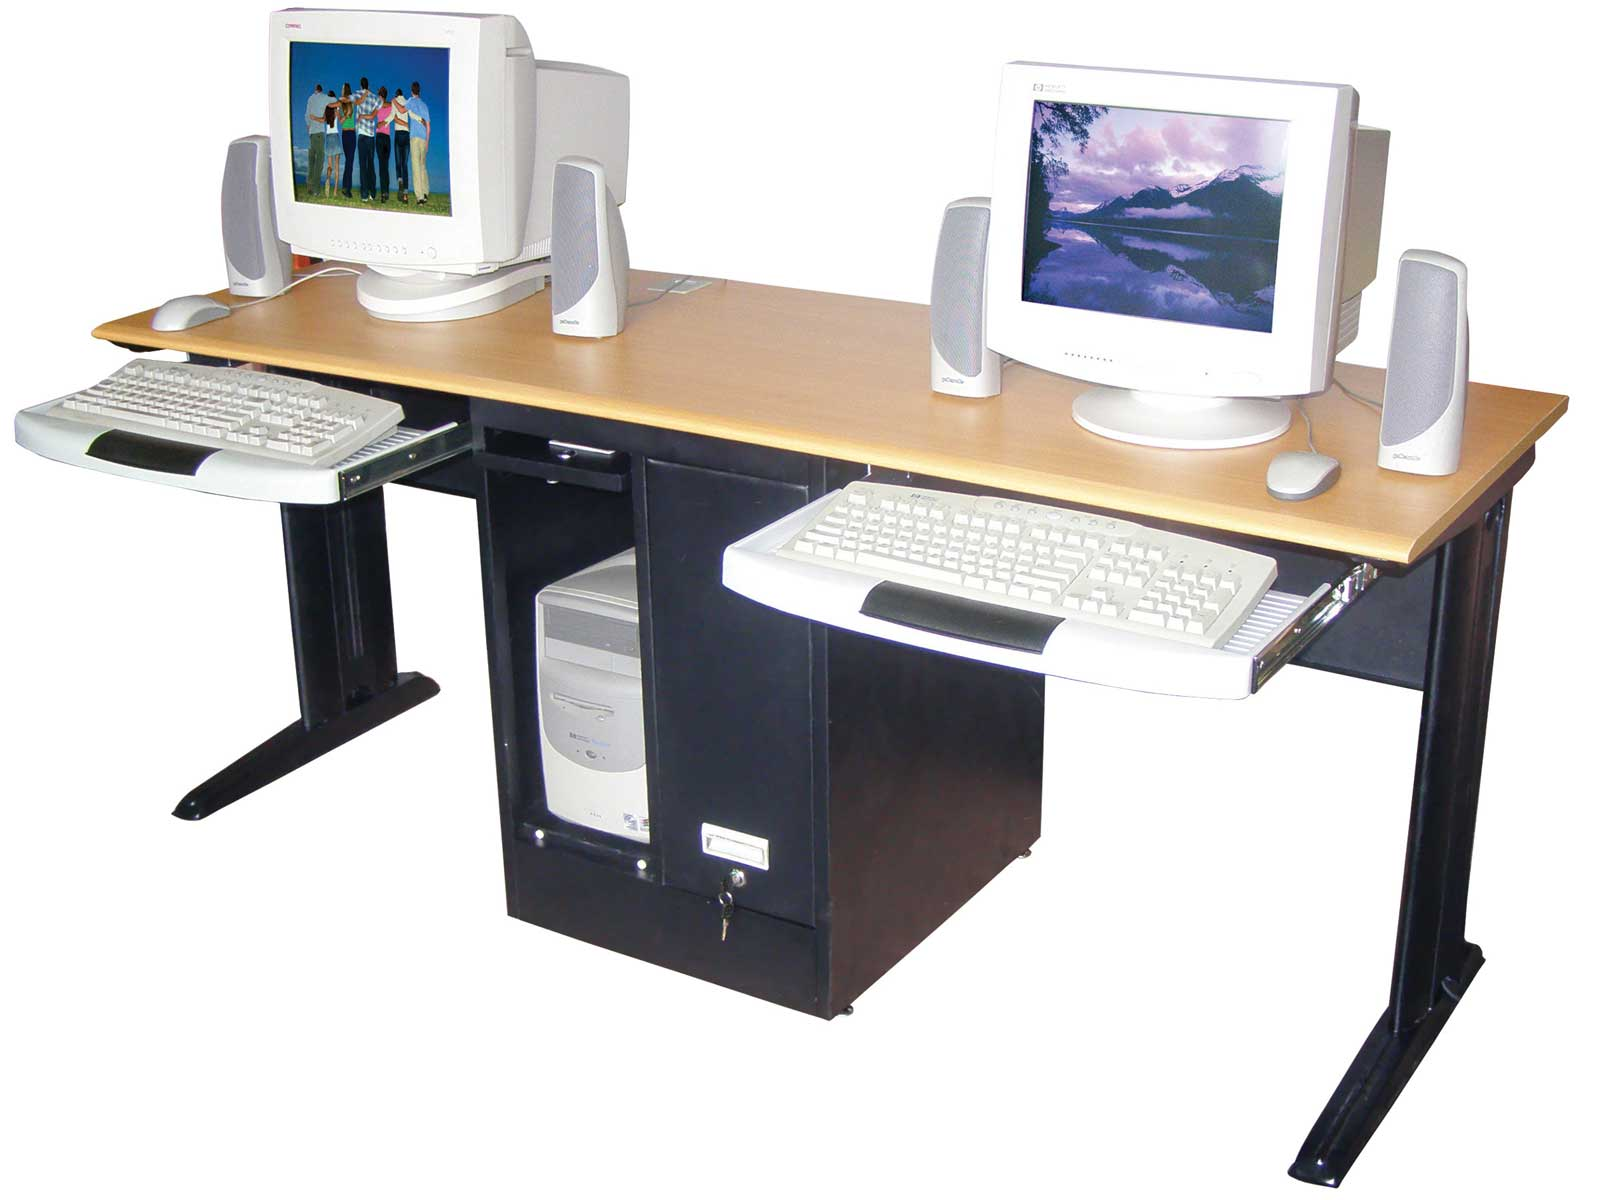 Dual workstation desk office furniture for Home office workstation desk